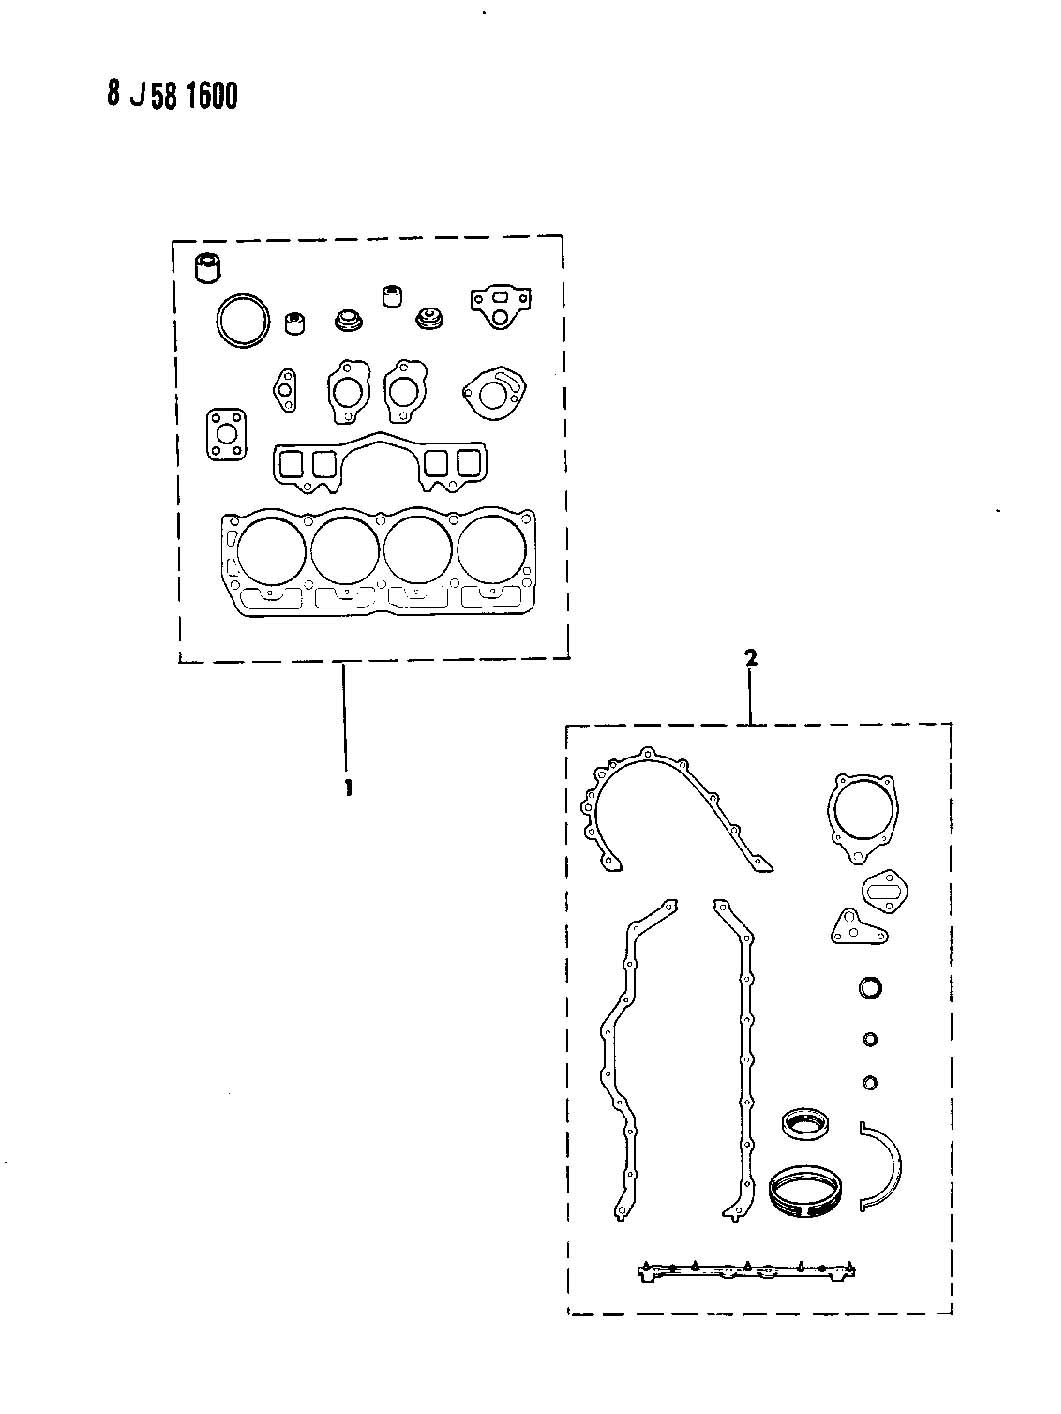 wiring diagram for 89 jeep anche